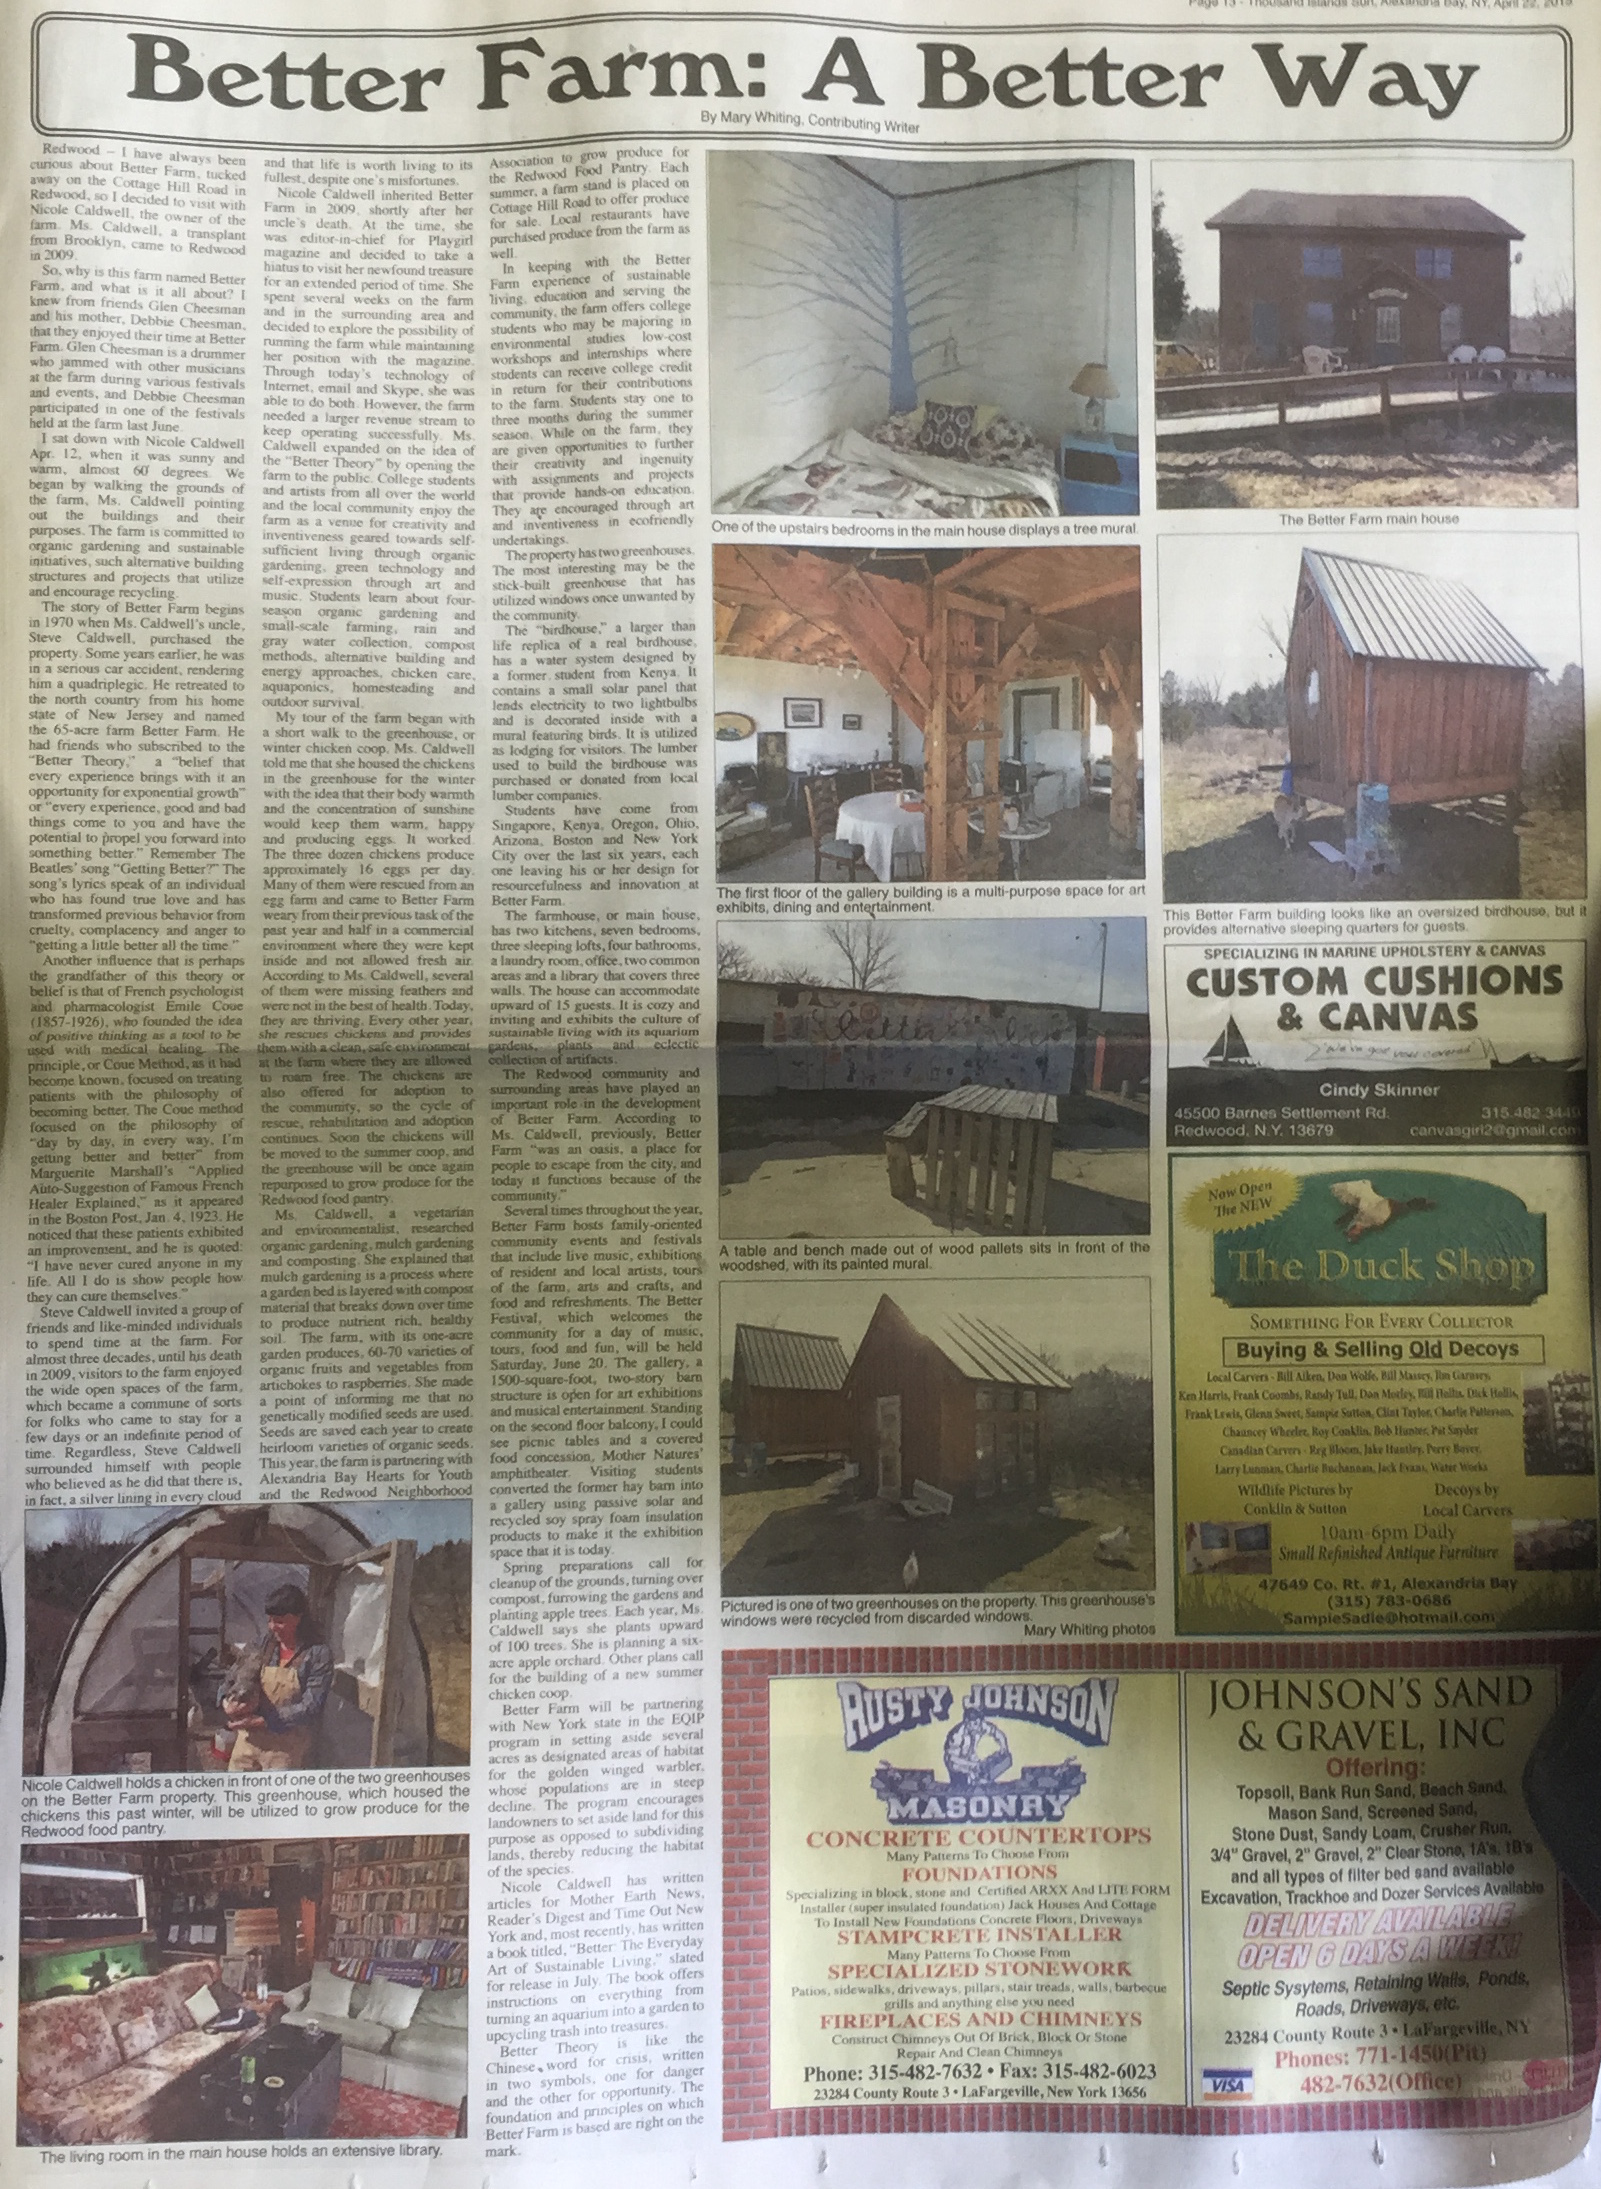 Article and photos by  Mary Whiting for the Thousand Islands Sun.